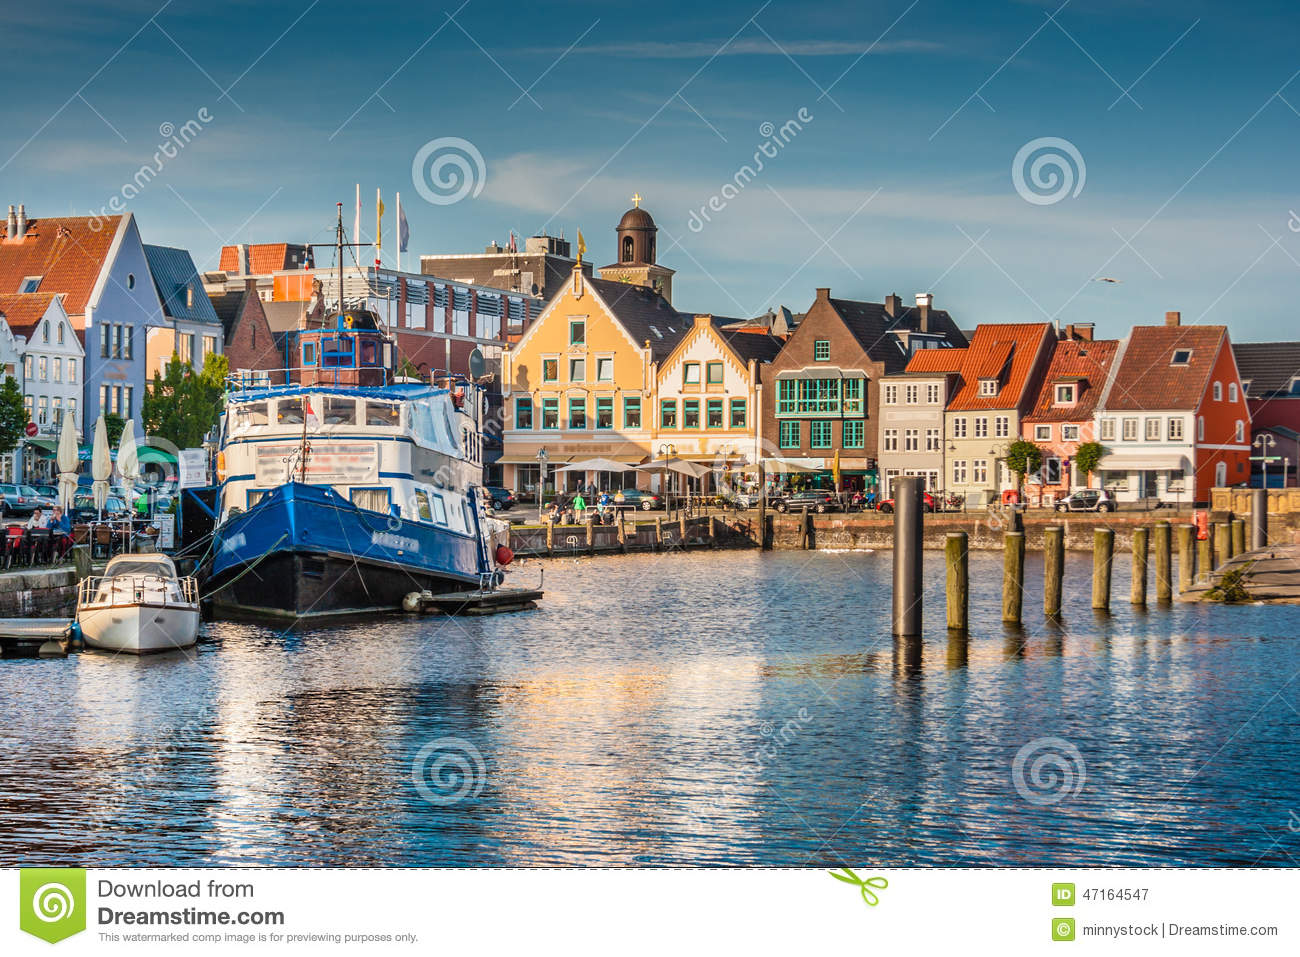 ville de husum nordfriesland schleswig holstein allemagne photographie ditorial image. Black Bedroom Furniture Sets. Home Design Ideas